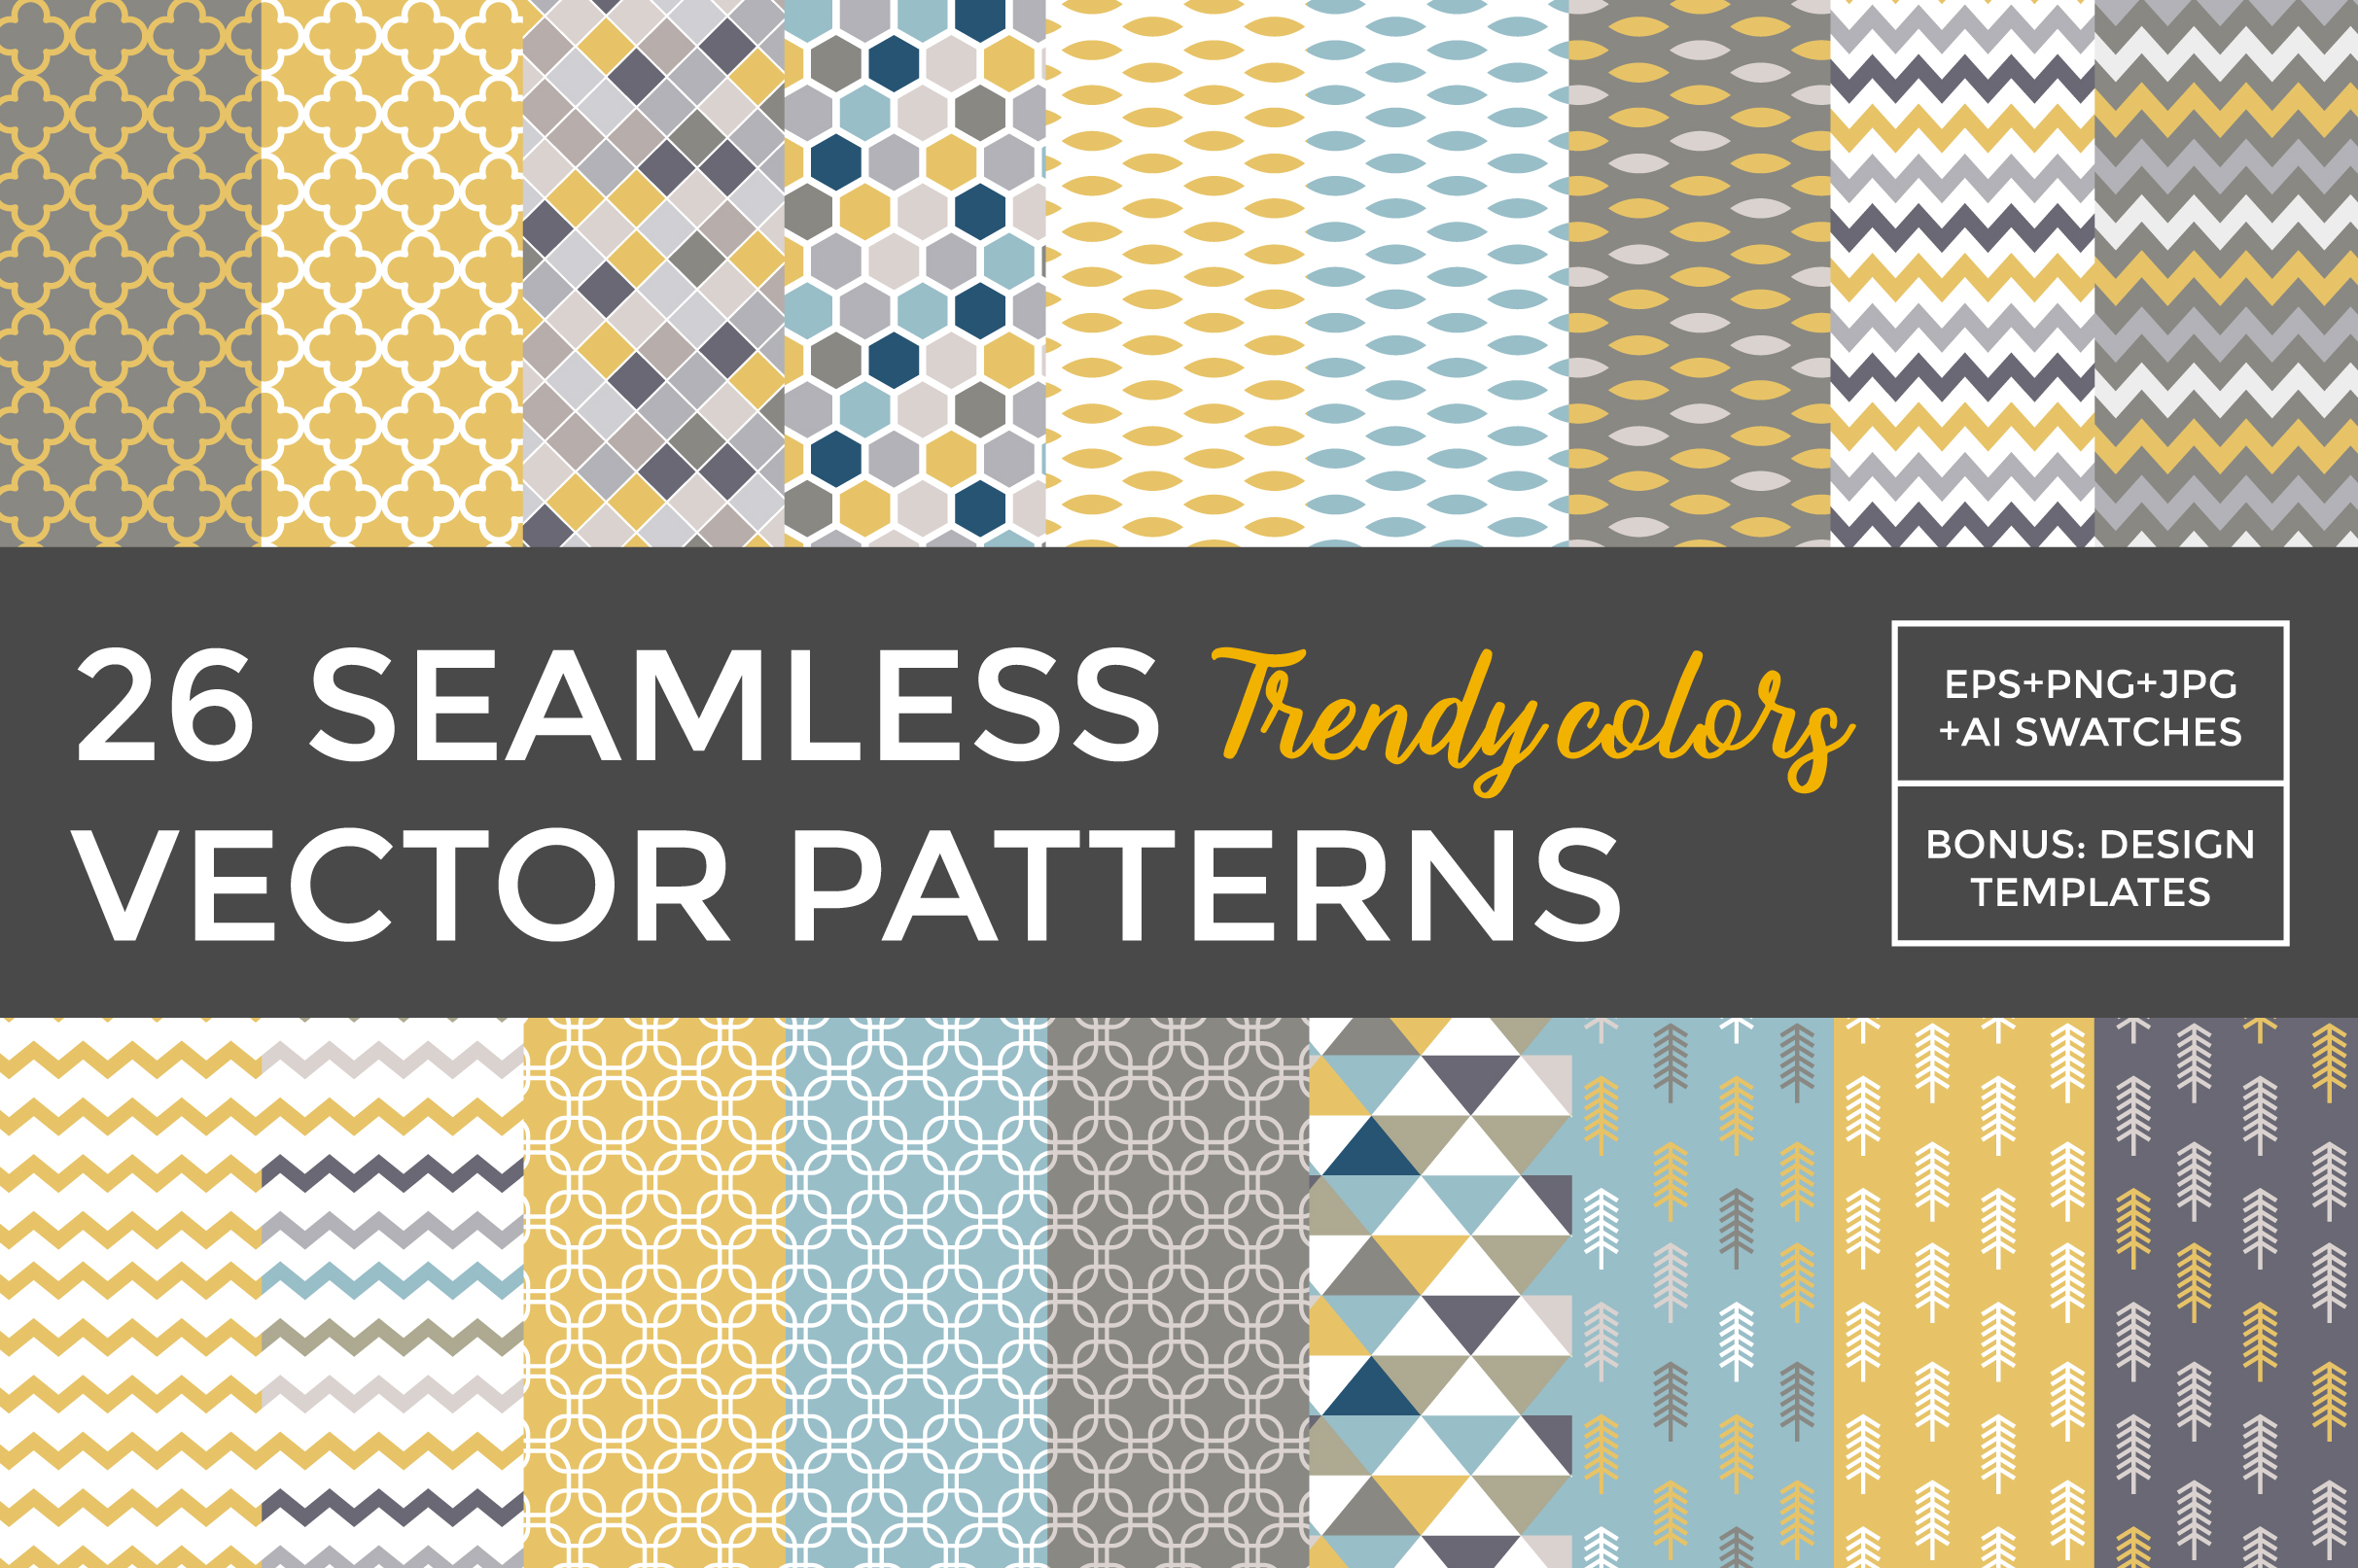 26 vector patterns Trendy Colors example image 1